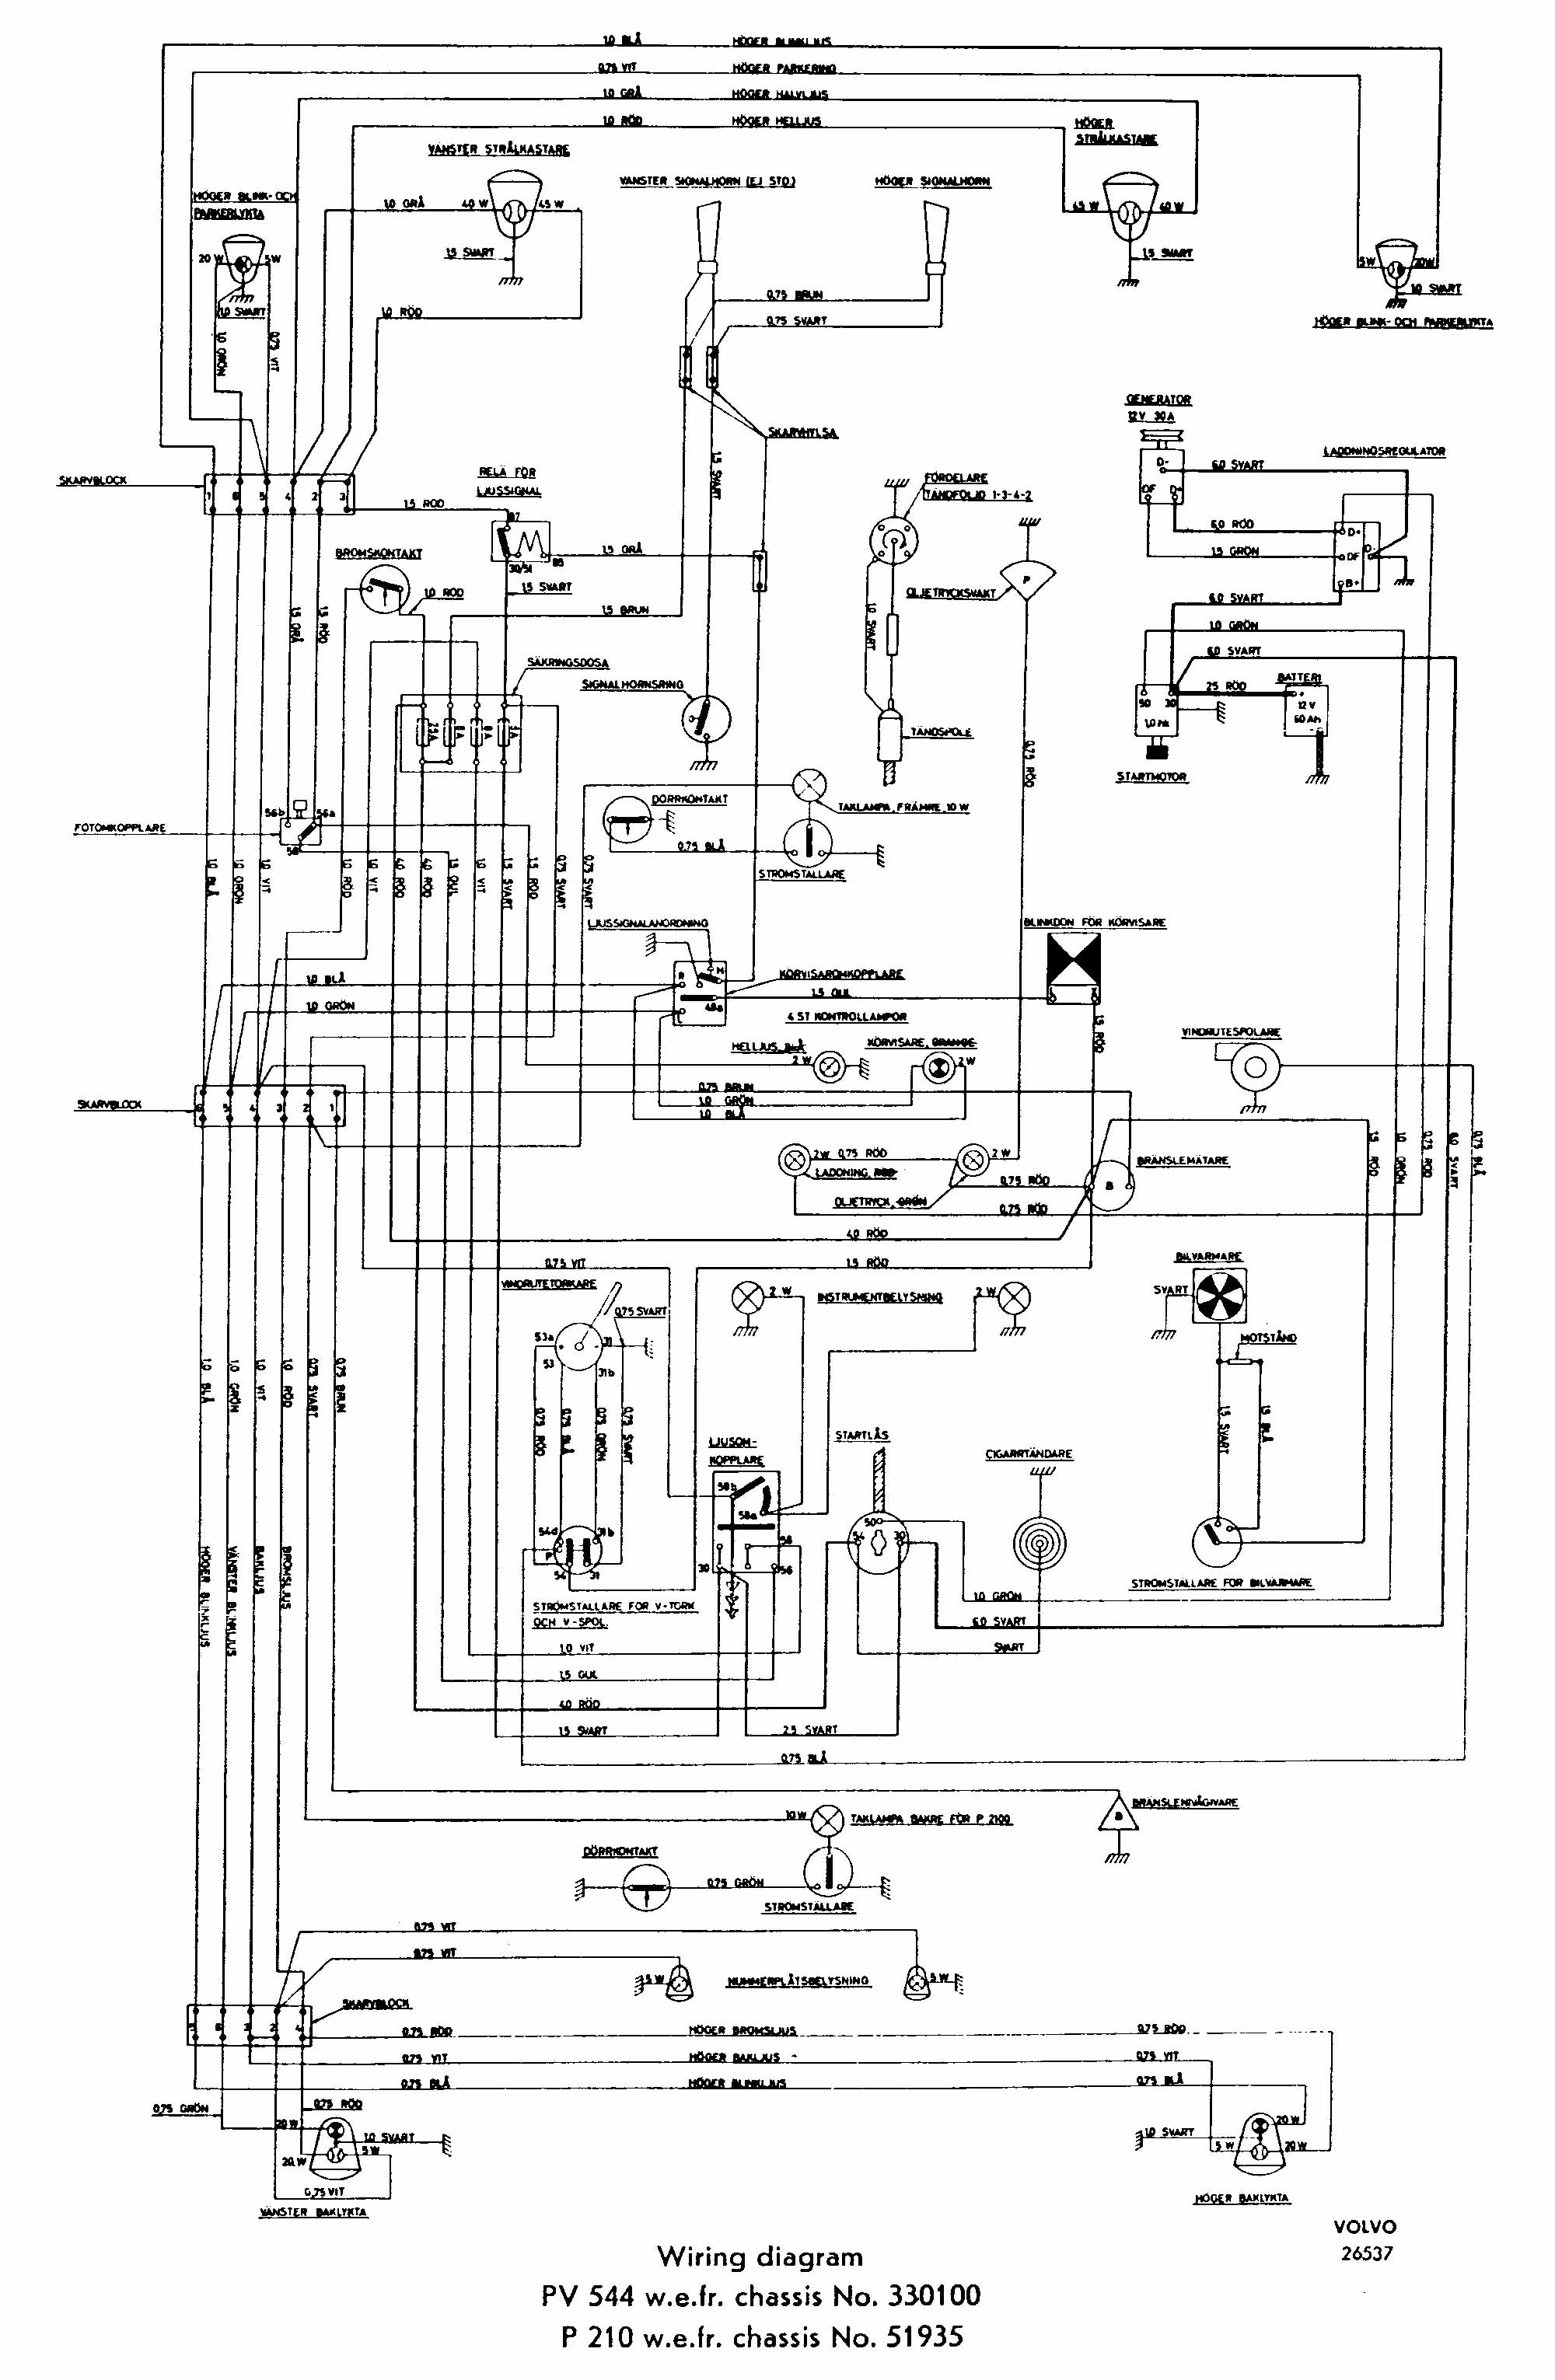 544 Wiring Diagram sw em fuses, allocation and troubleshooting volvo amazon wiring diagram at fashall.co